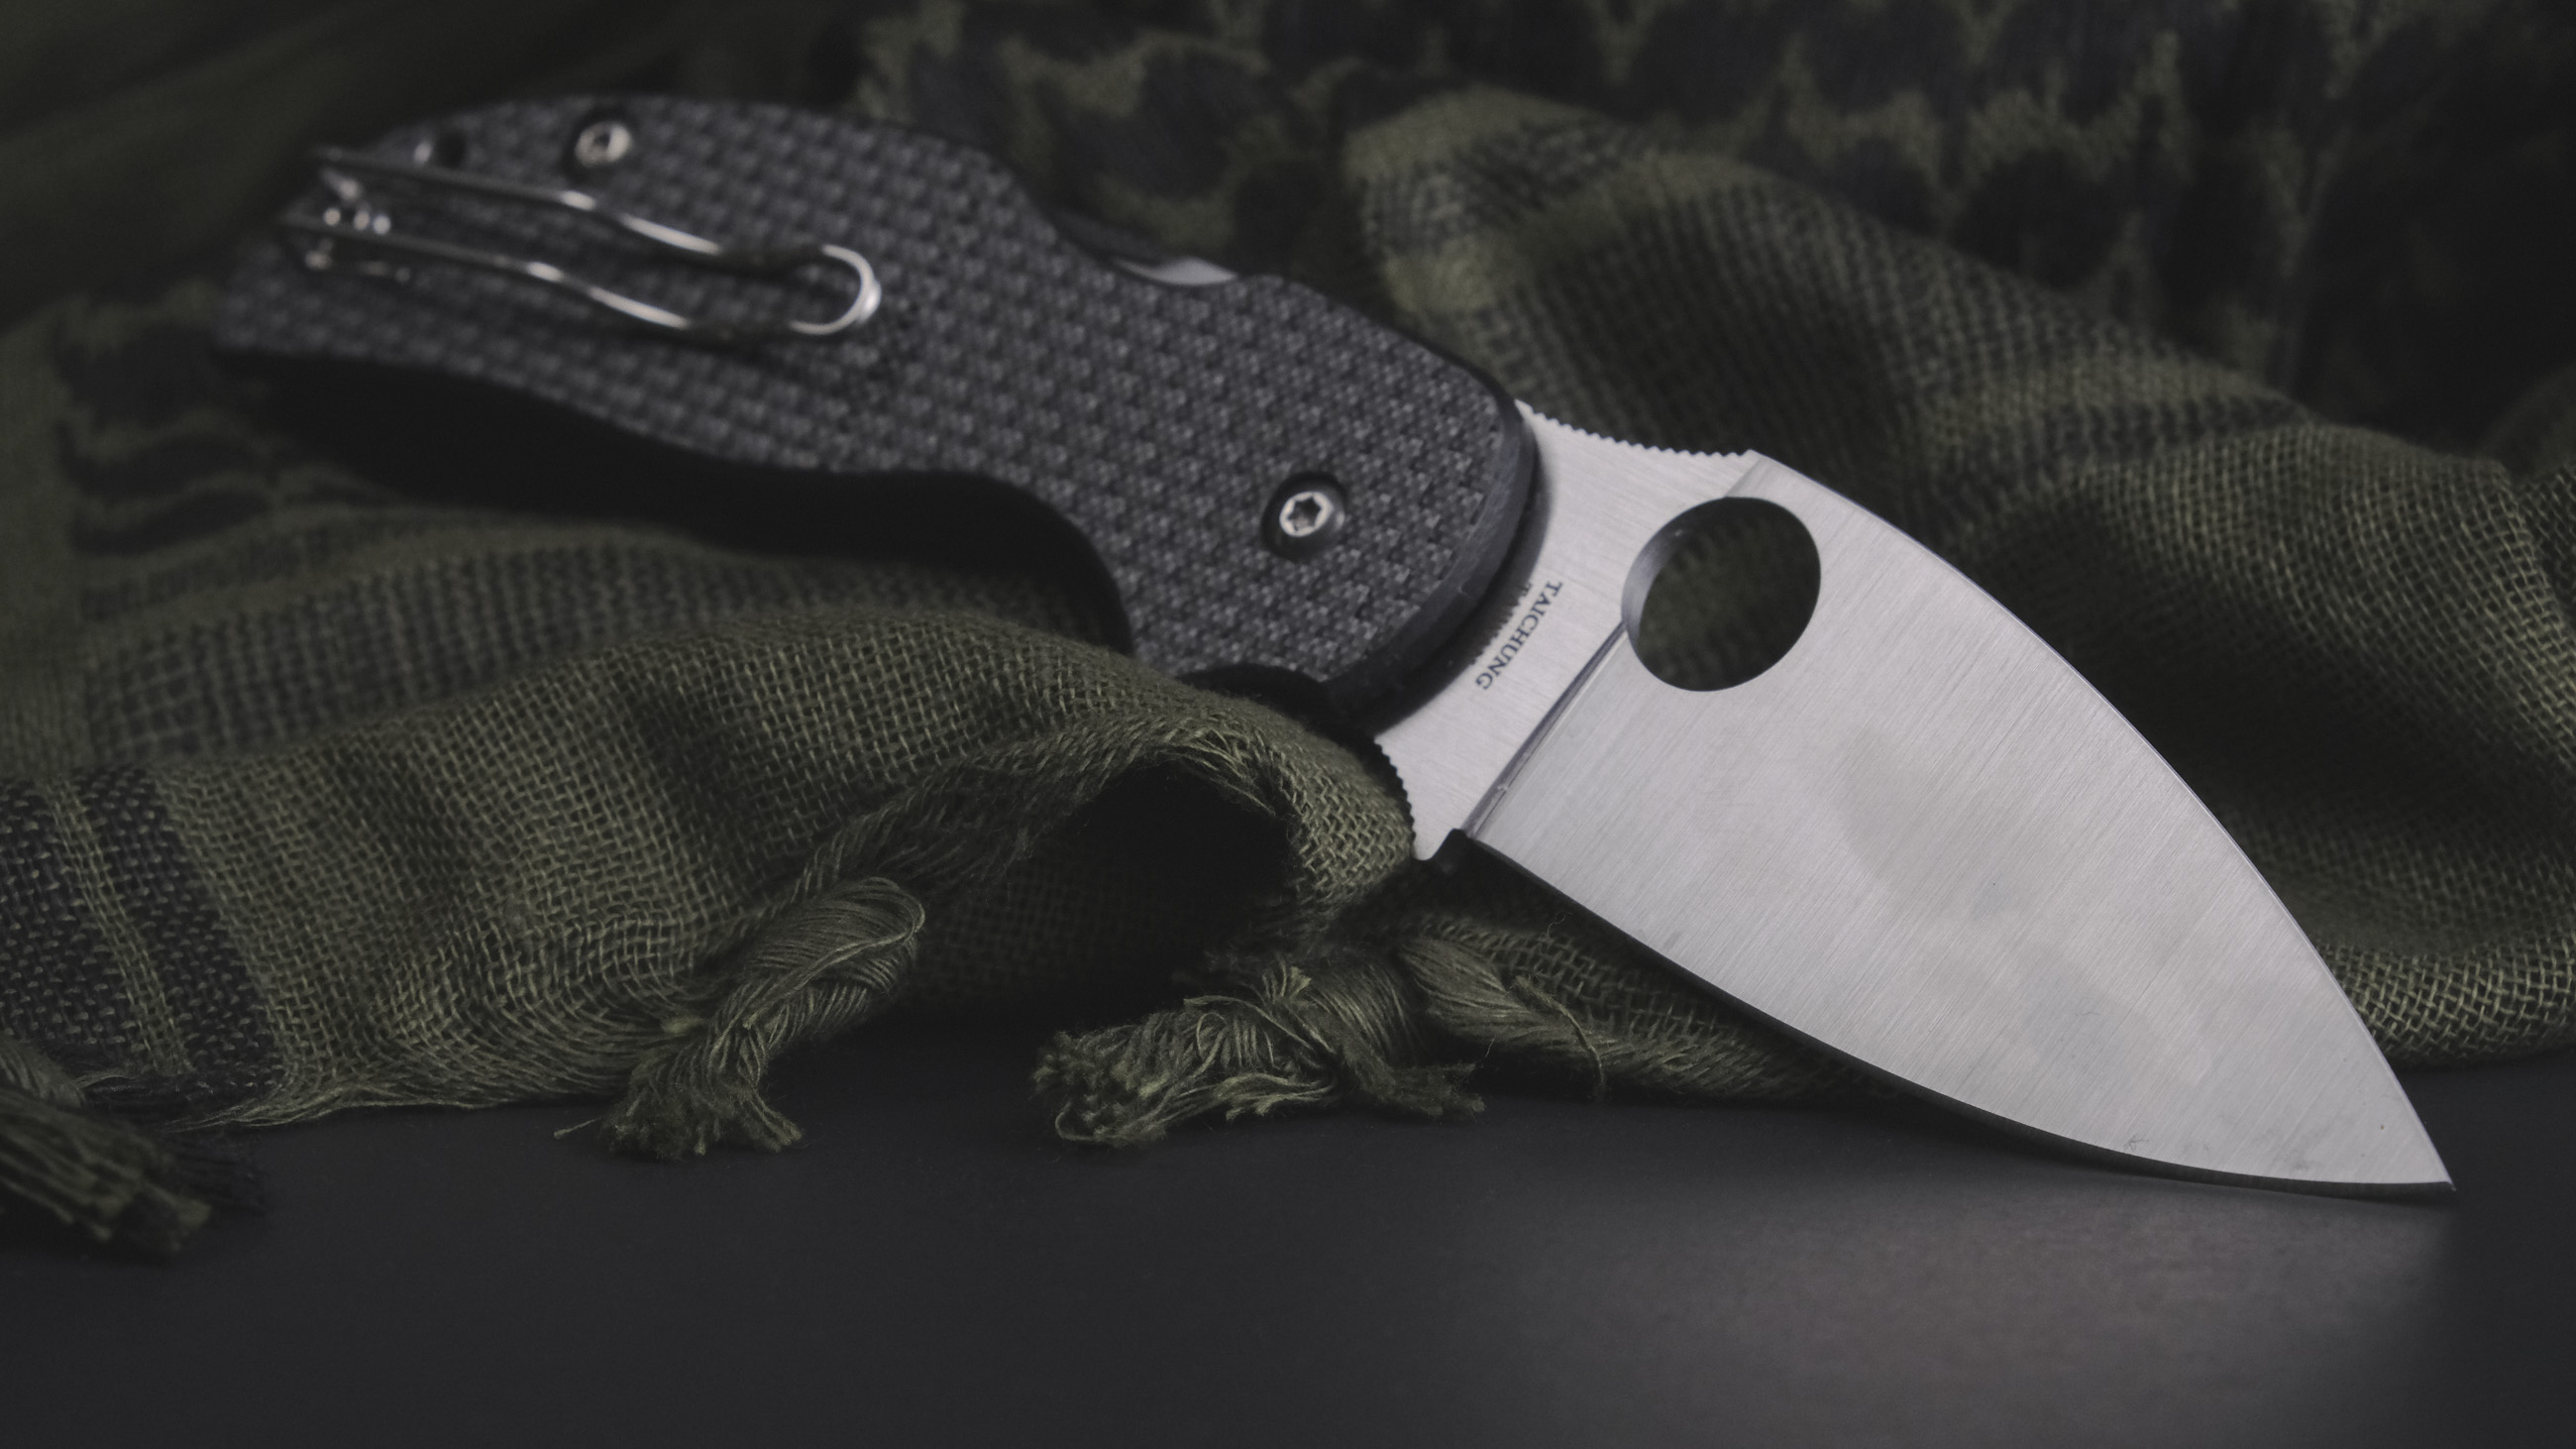 Spyderco Sage 5 Review